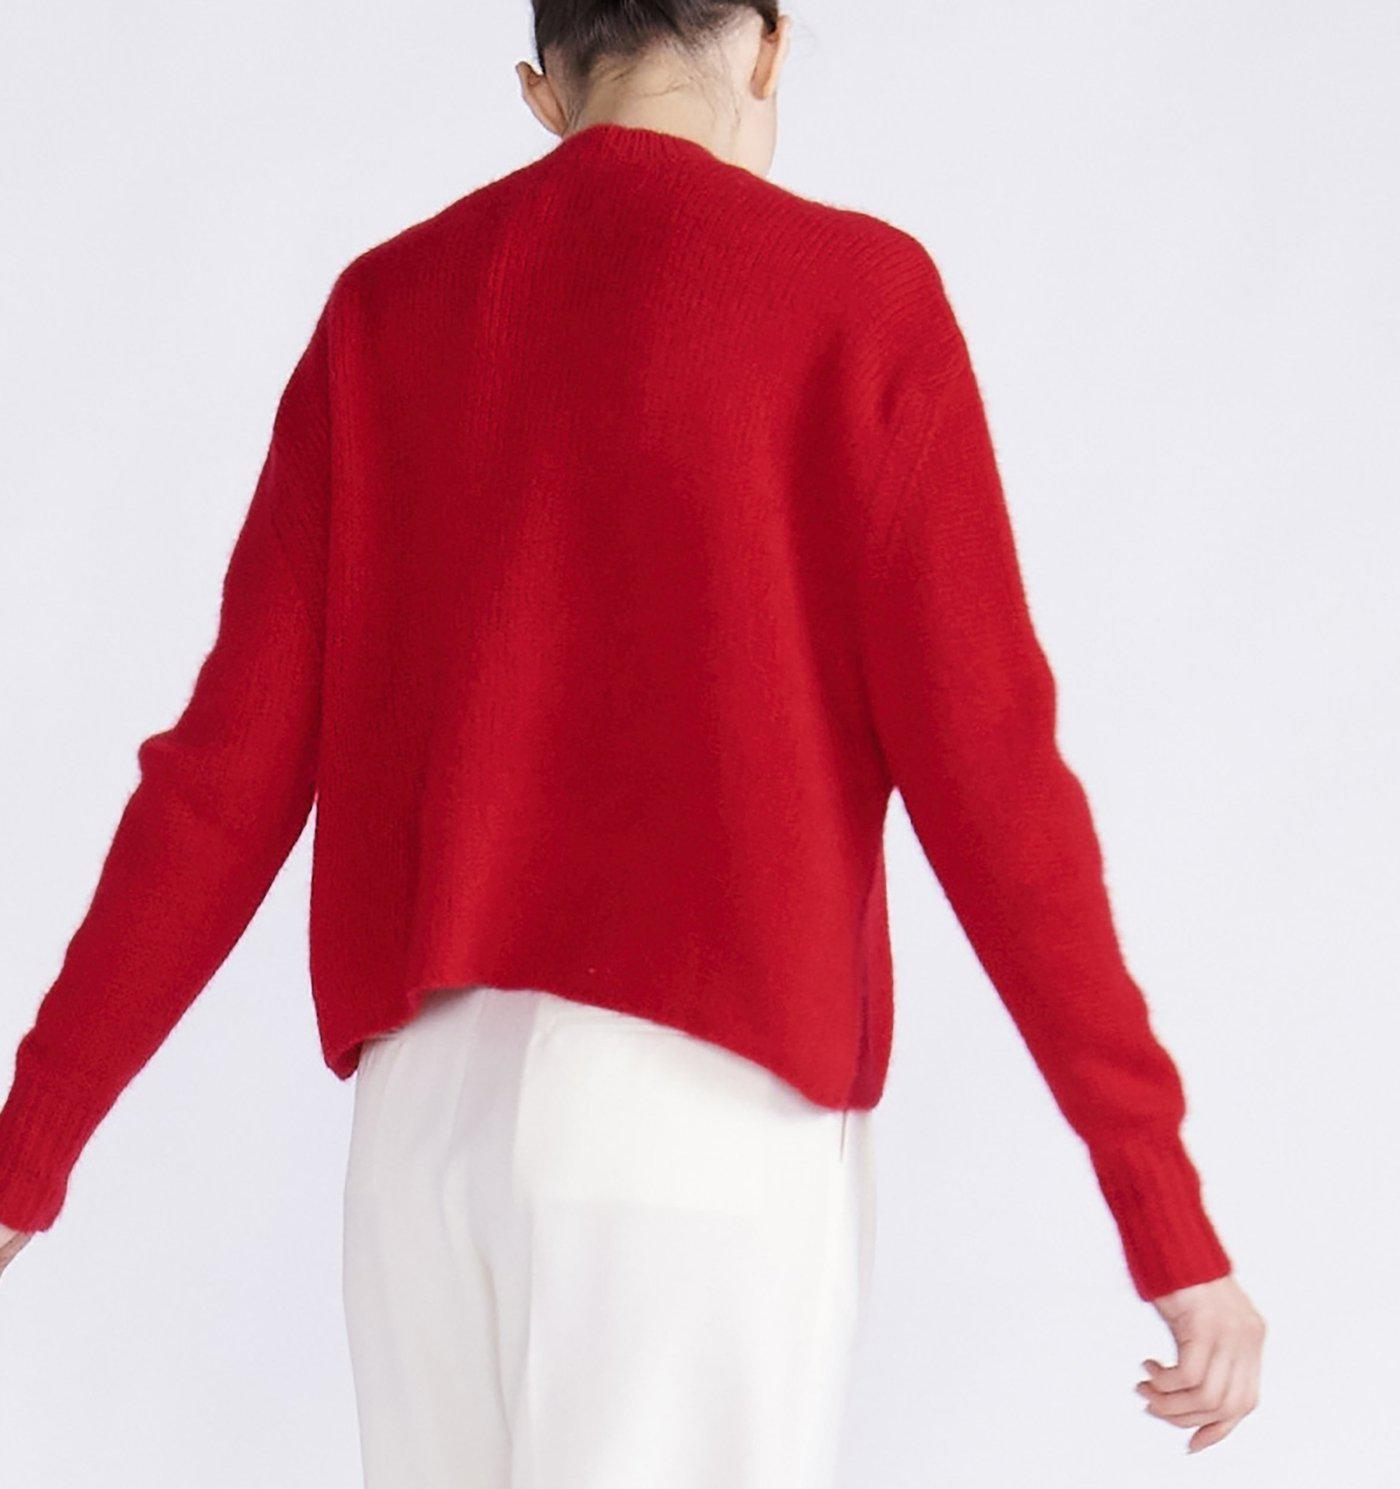 RYAN ROCHE CASHMERE SILK CROPPED SWEATER WITH RIBBED NECK AND CUFFS